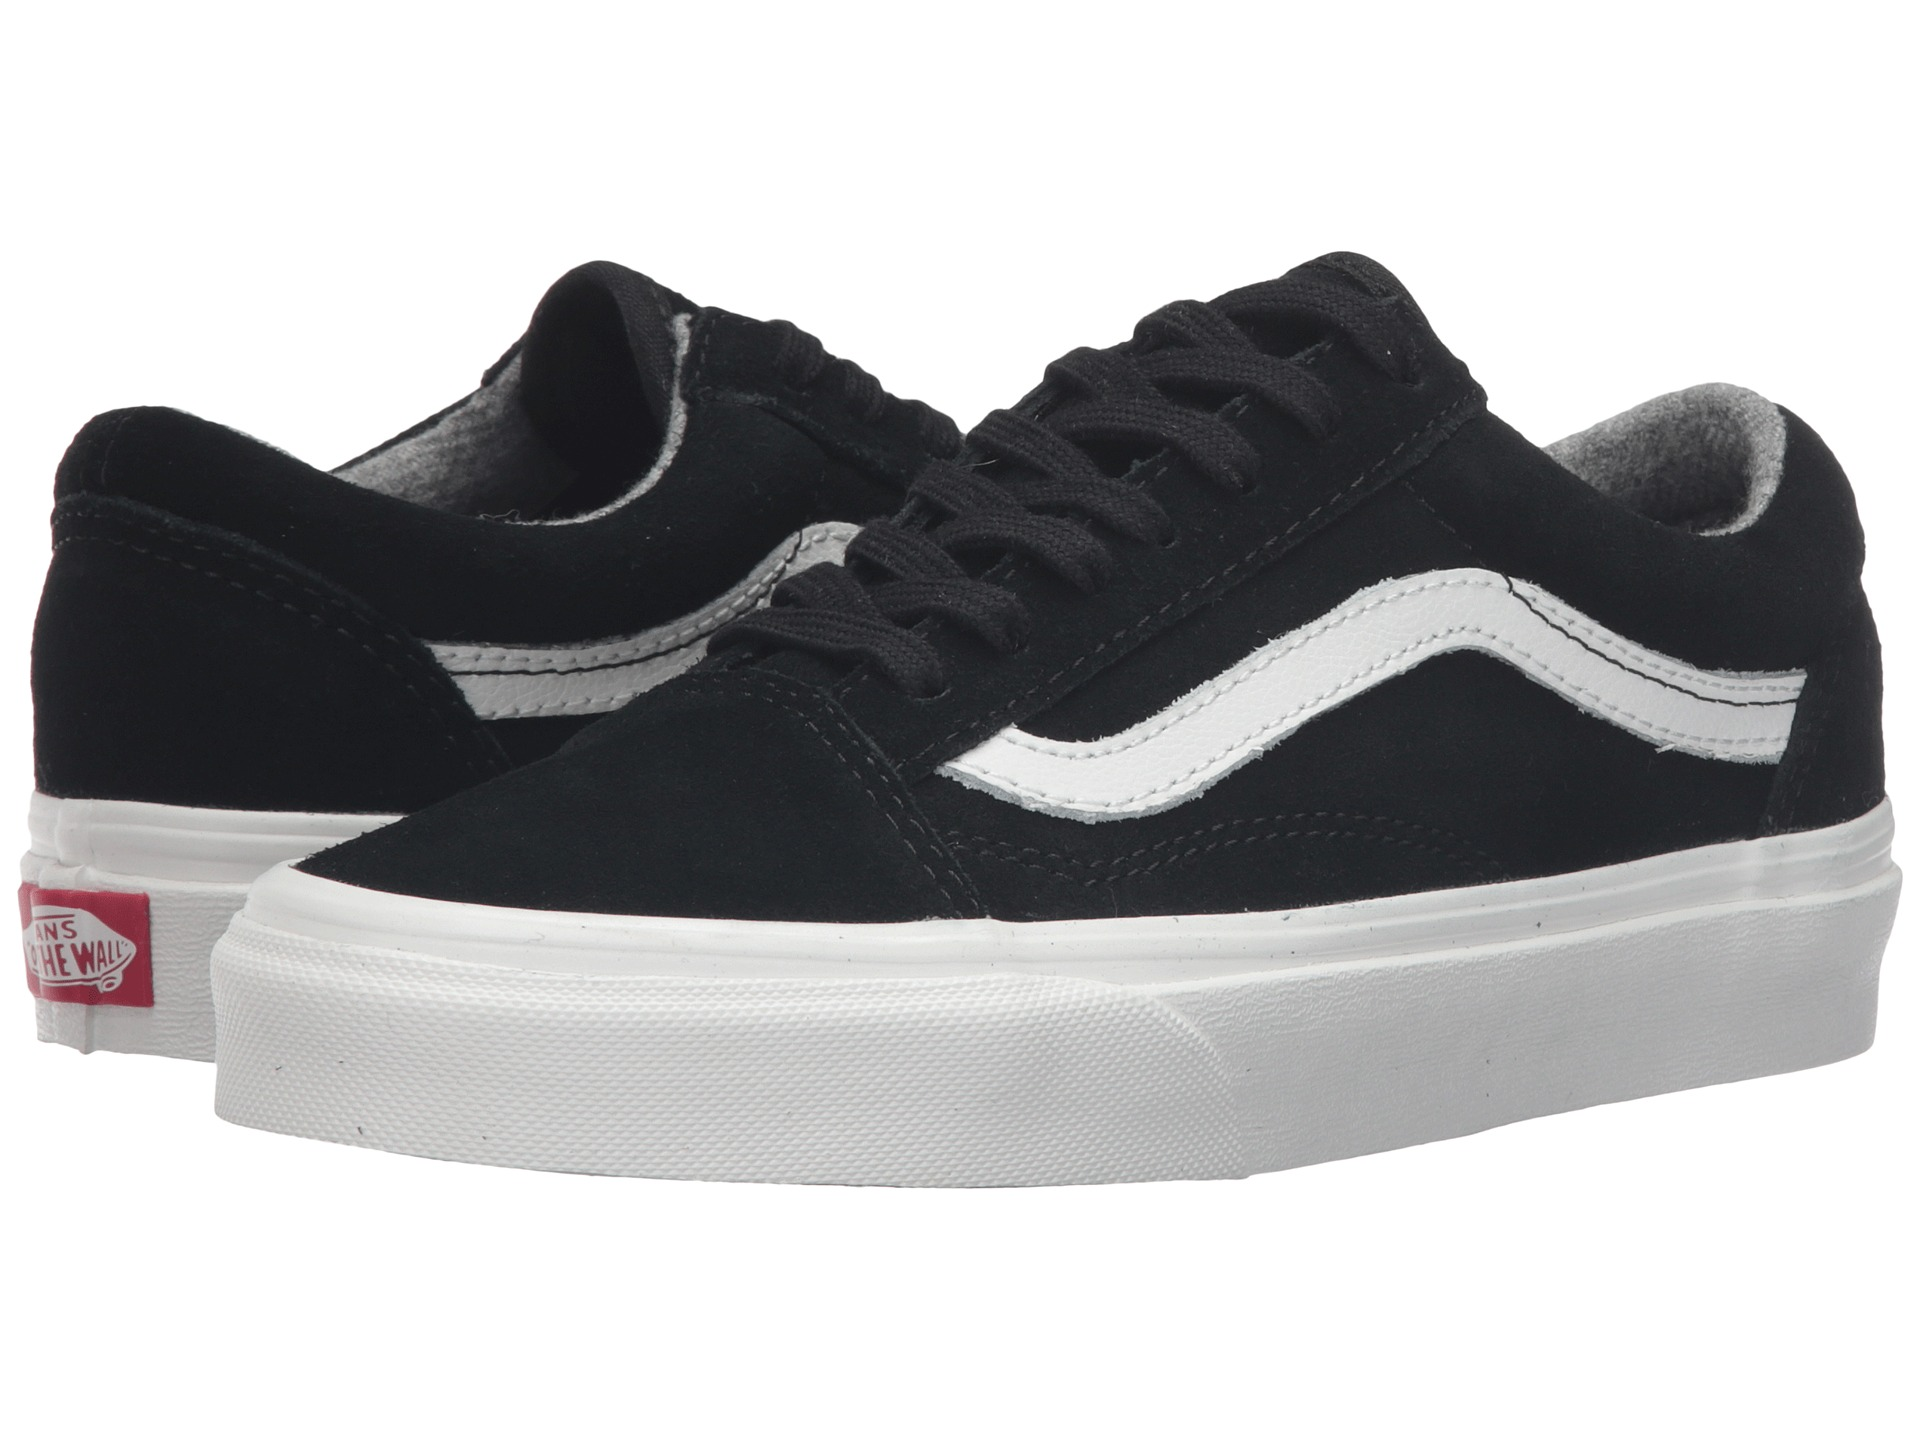 vans old skool premium leather true white. Black Bedroom Furniture Sets. Home Design Ideas